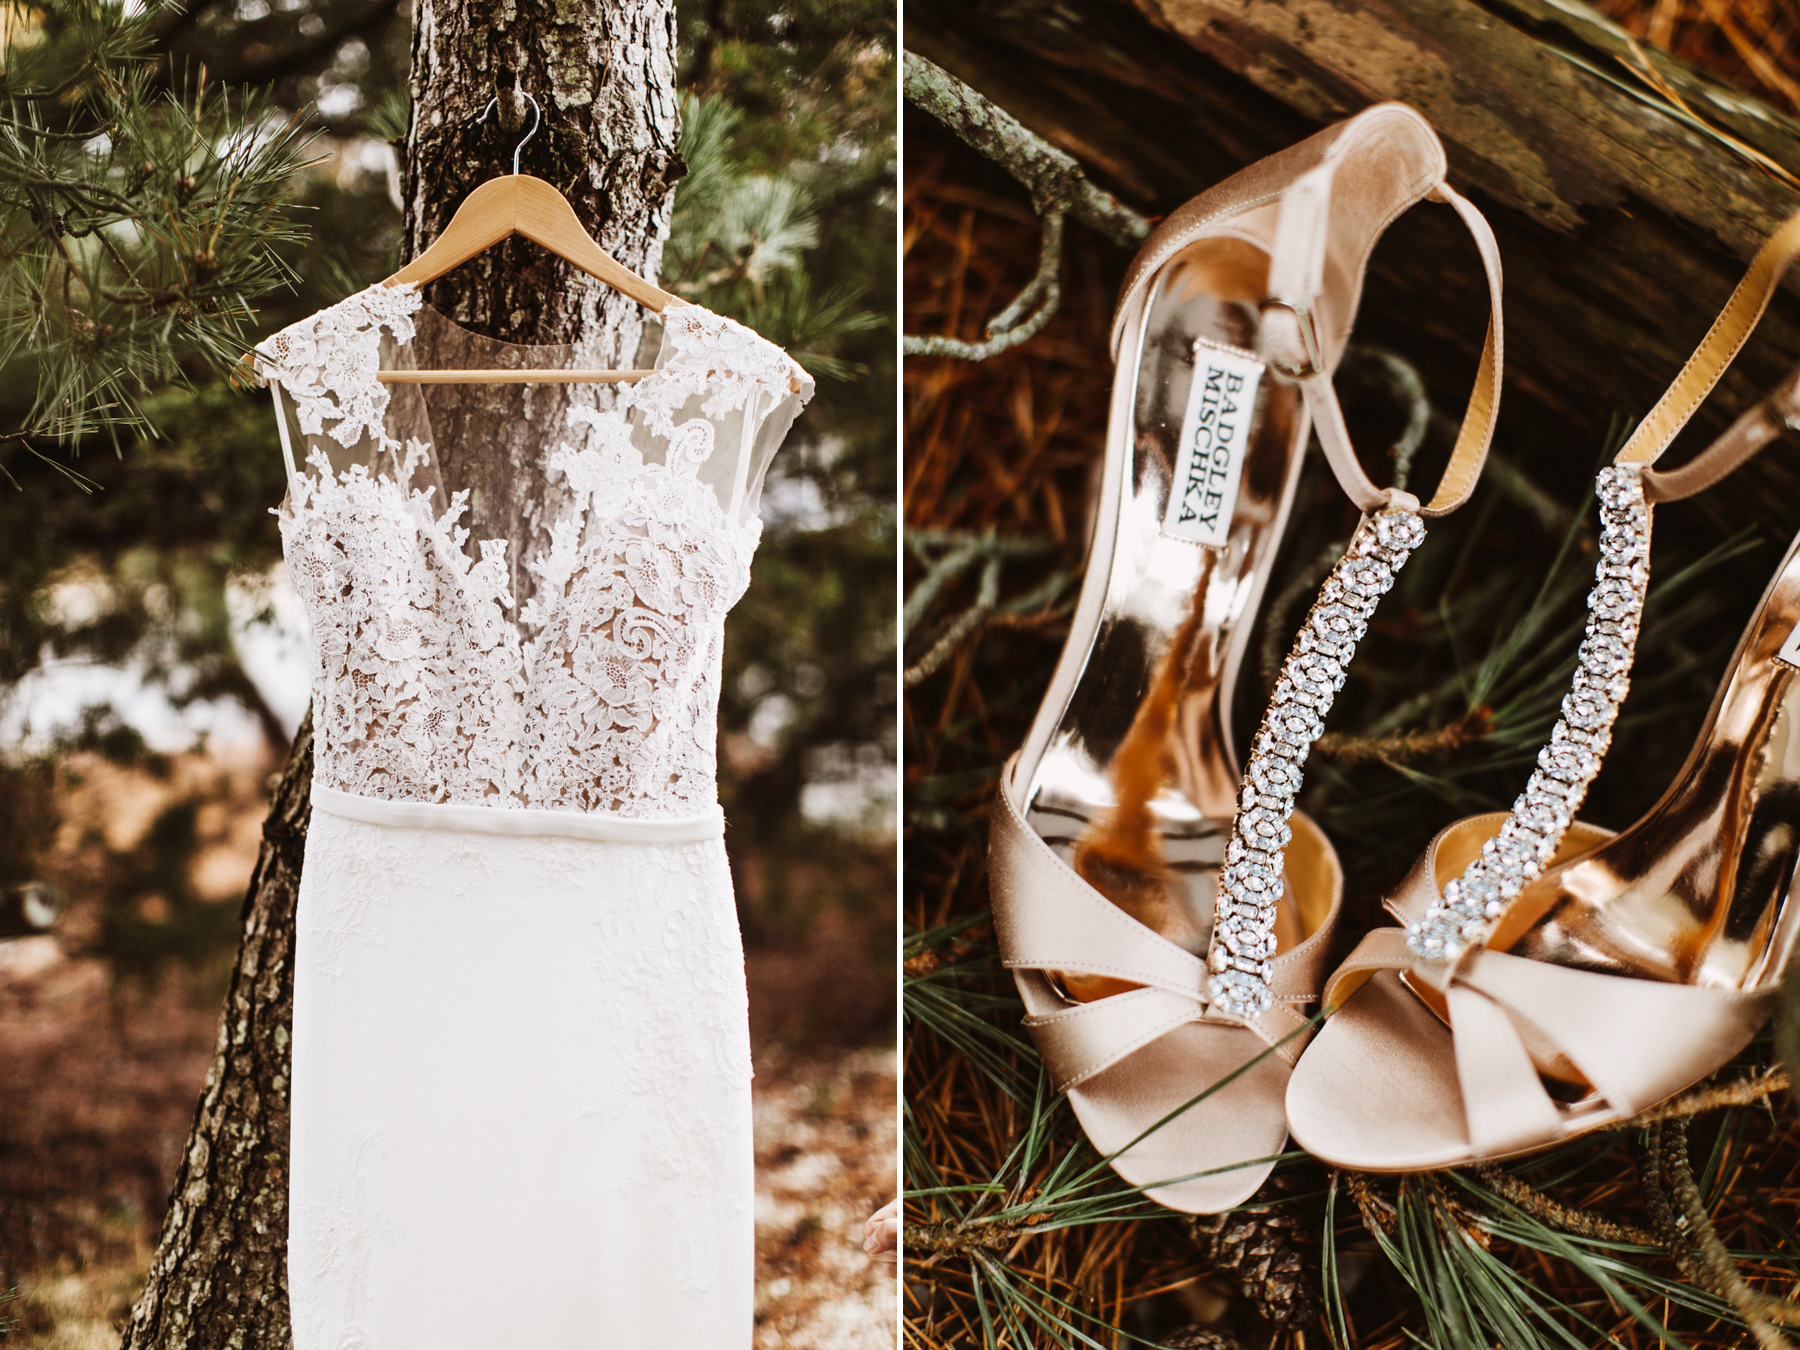 Laura and Paul . BOHO x Mid-Century Modern Wedding at Daymark ...